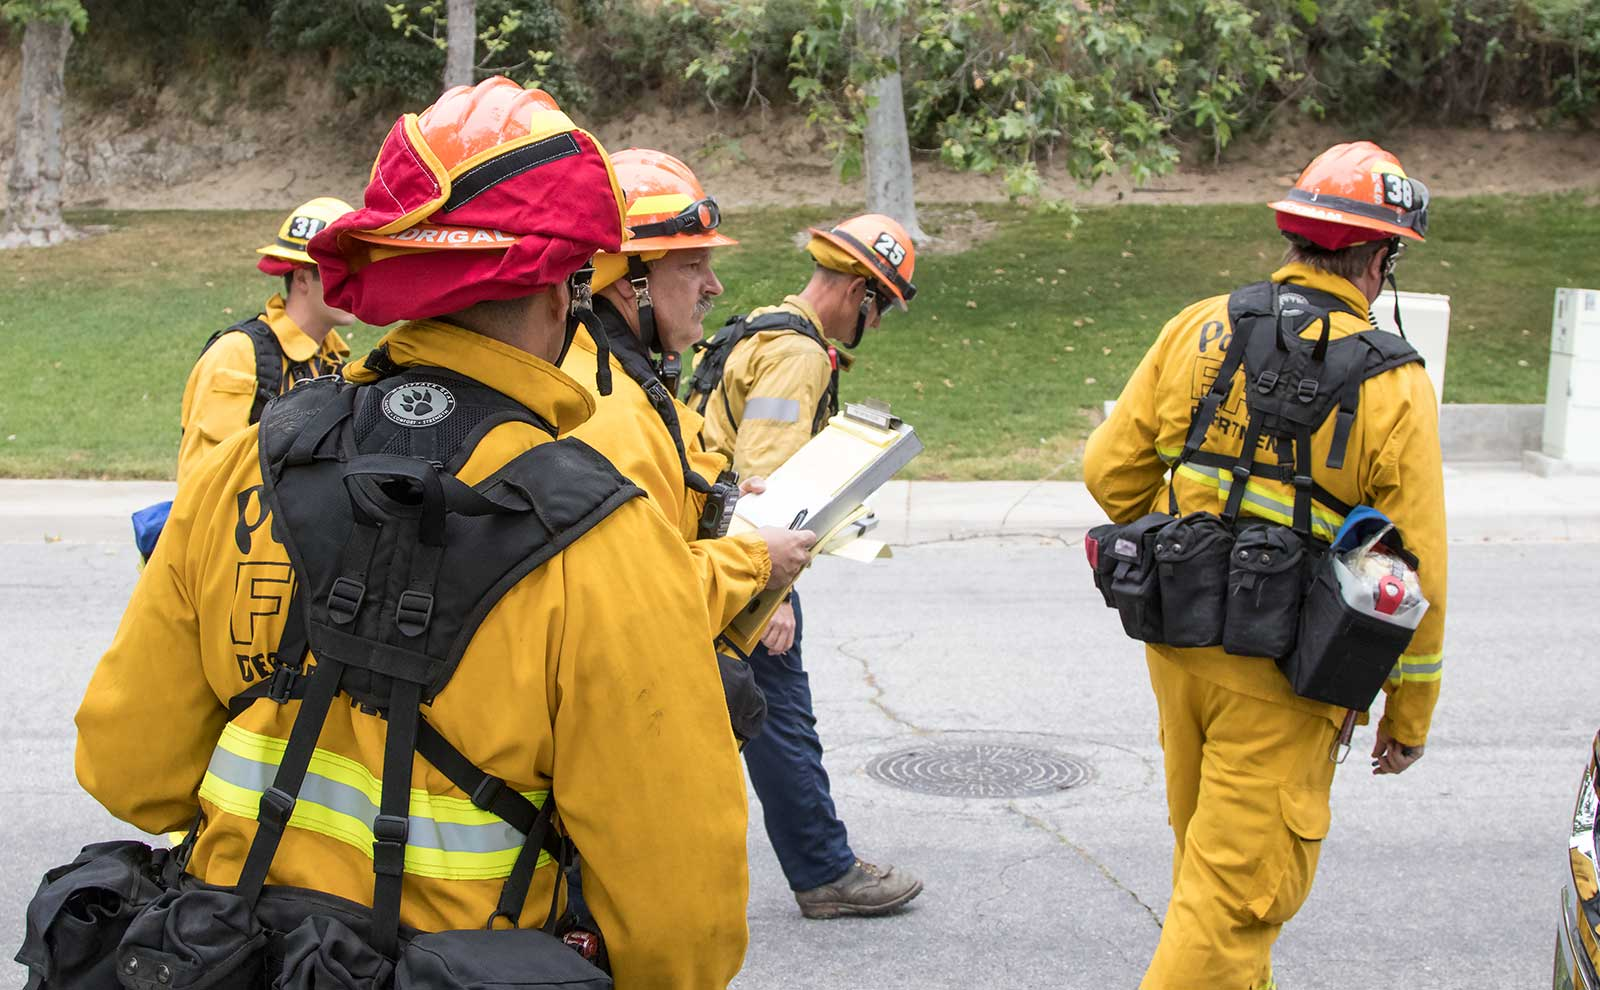 Firefighters gather for wildfire drill.